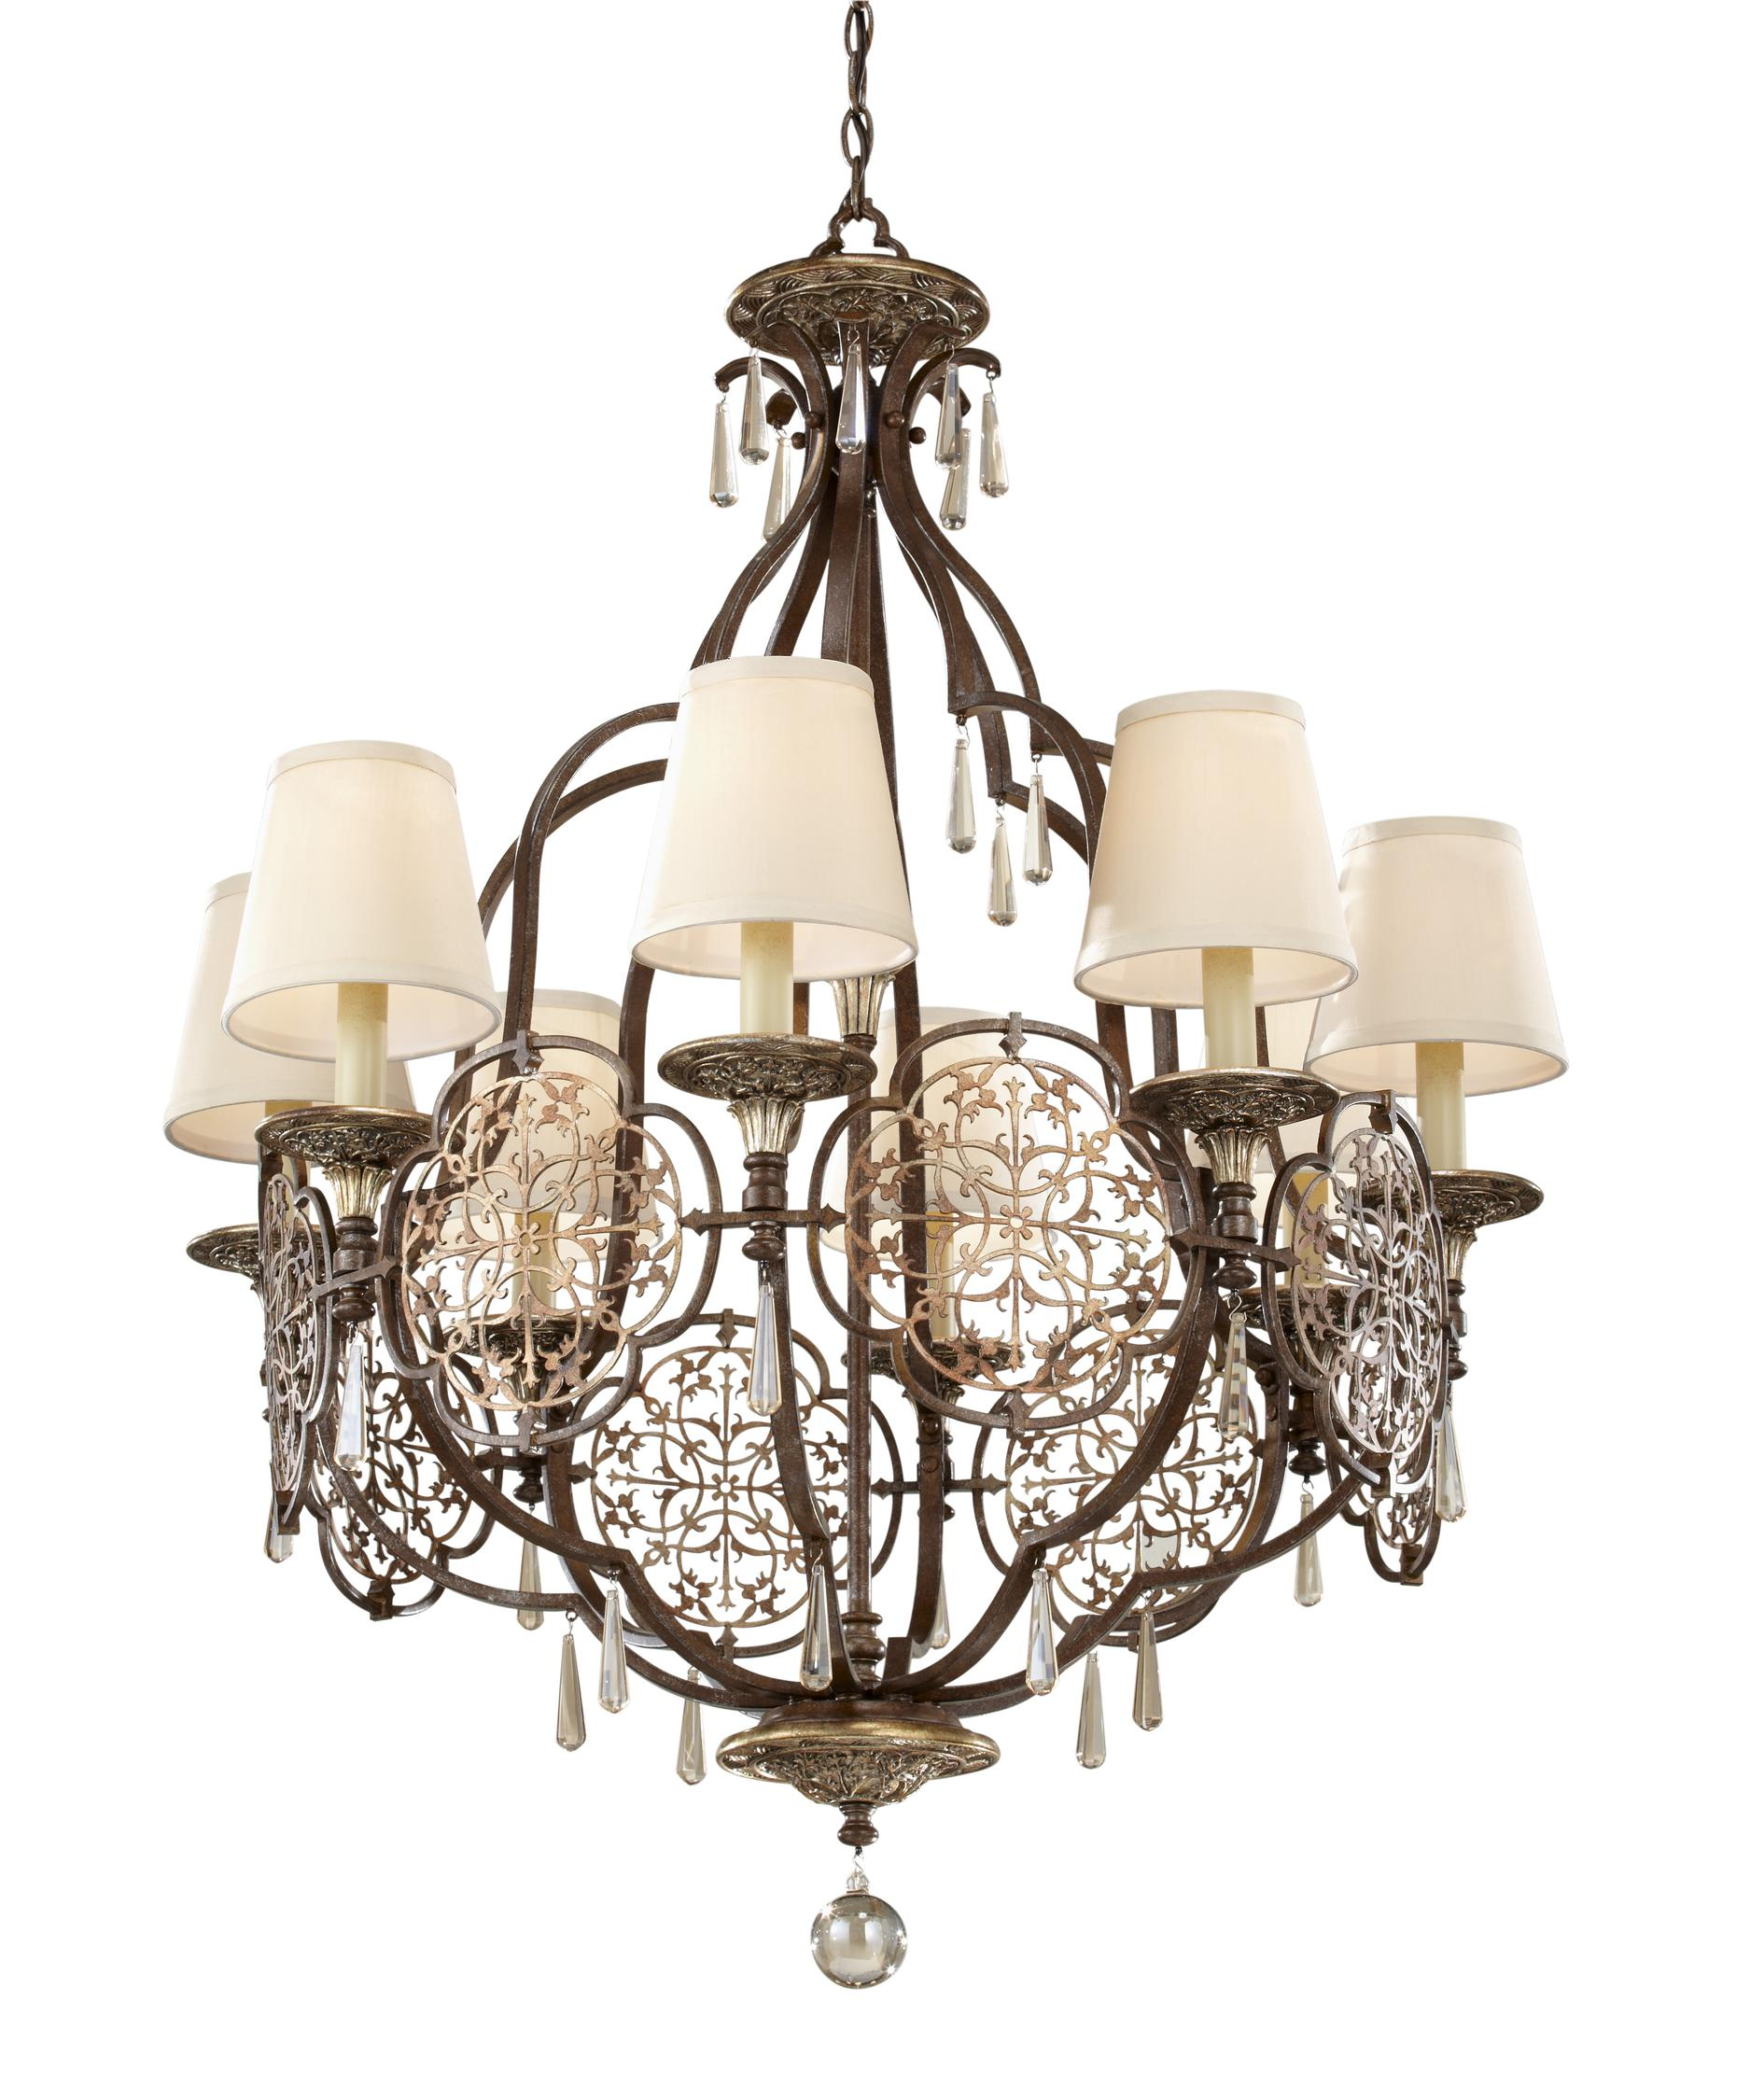 Murray Feiss Marcella 30 Inch Wide 8 Light Chandelier – Murray Feiss Chandeliers